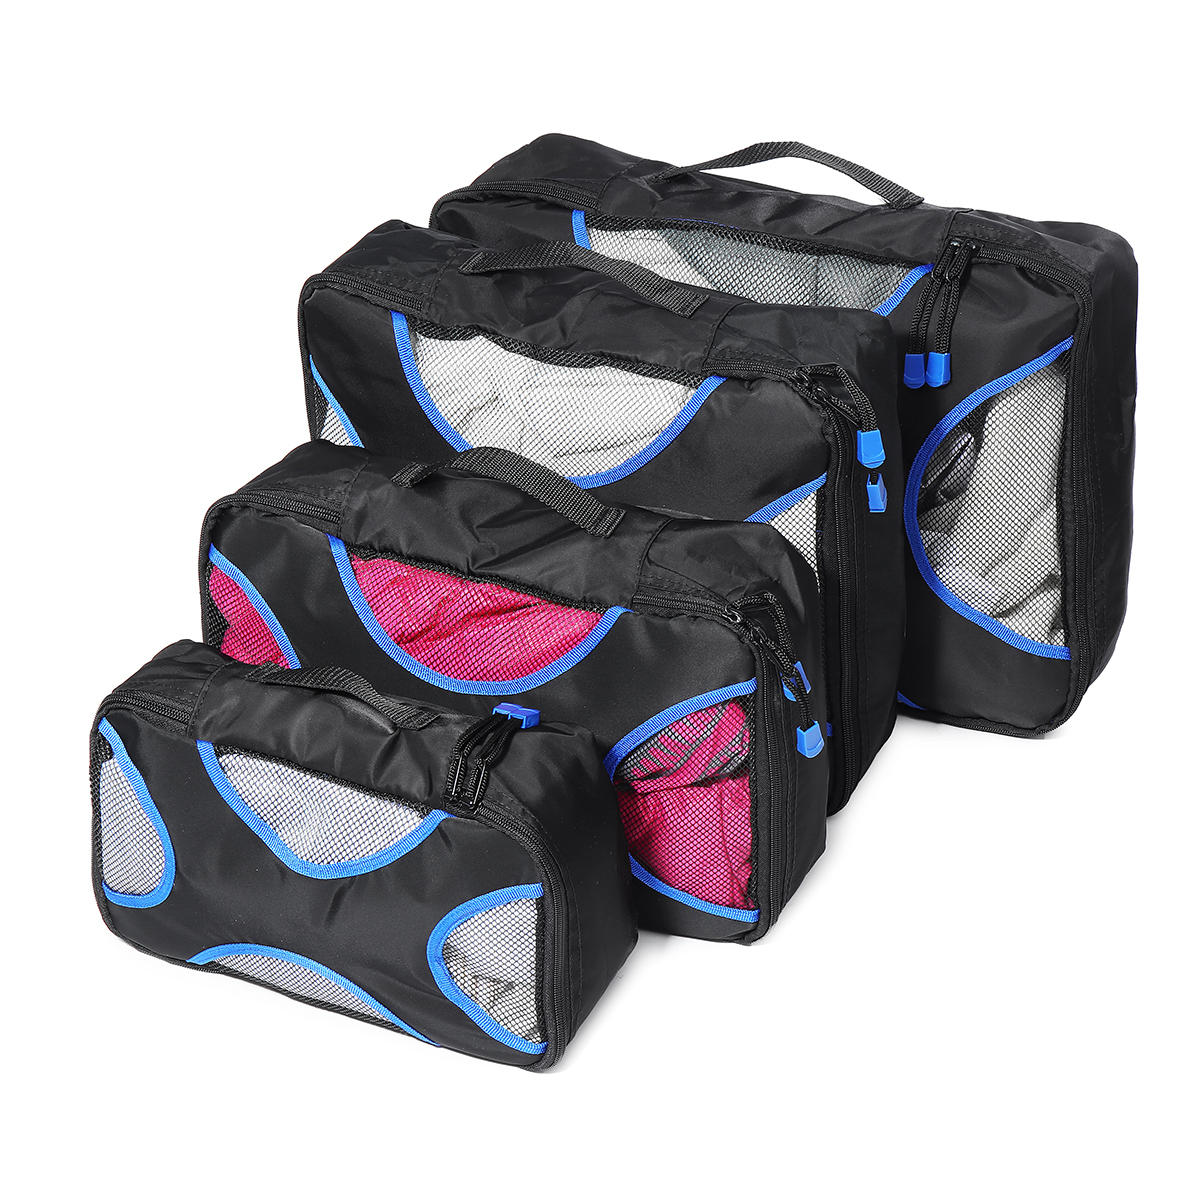 4Pcs/Set Outdoor Travel Packing Cubes Storage Bag Portable Zipper Clothes Luggage Organizer Packing Pouch